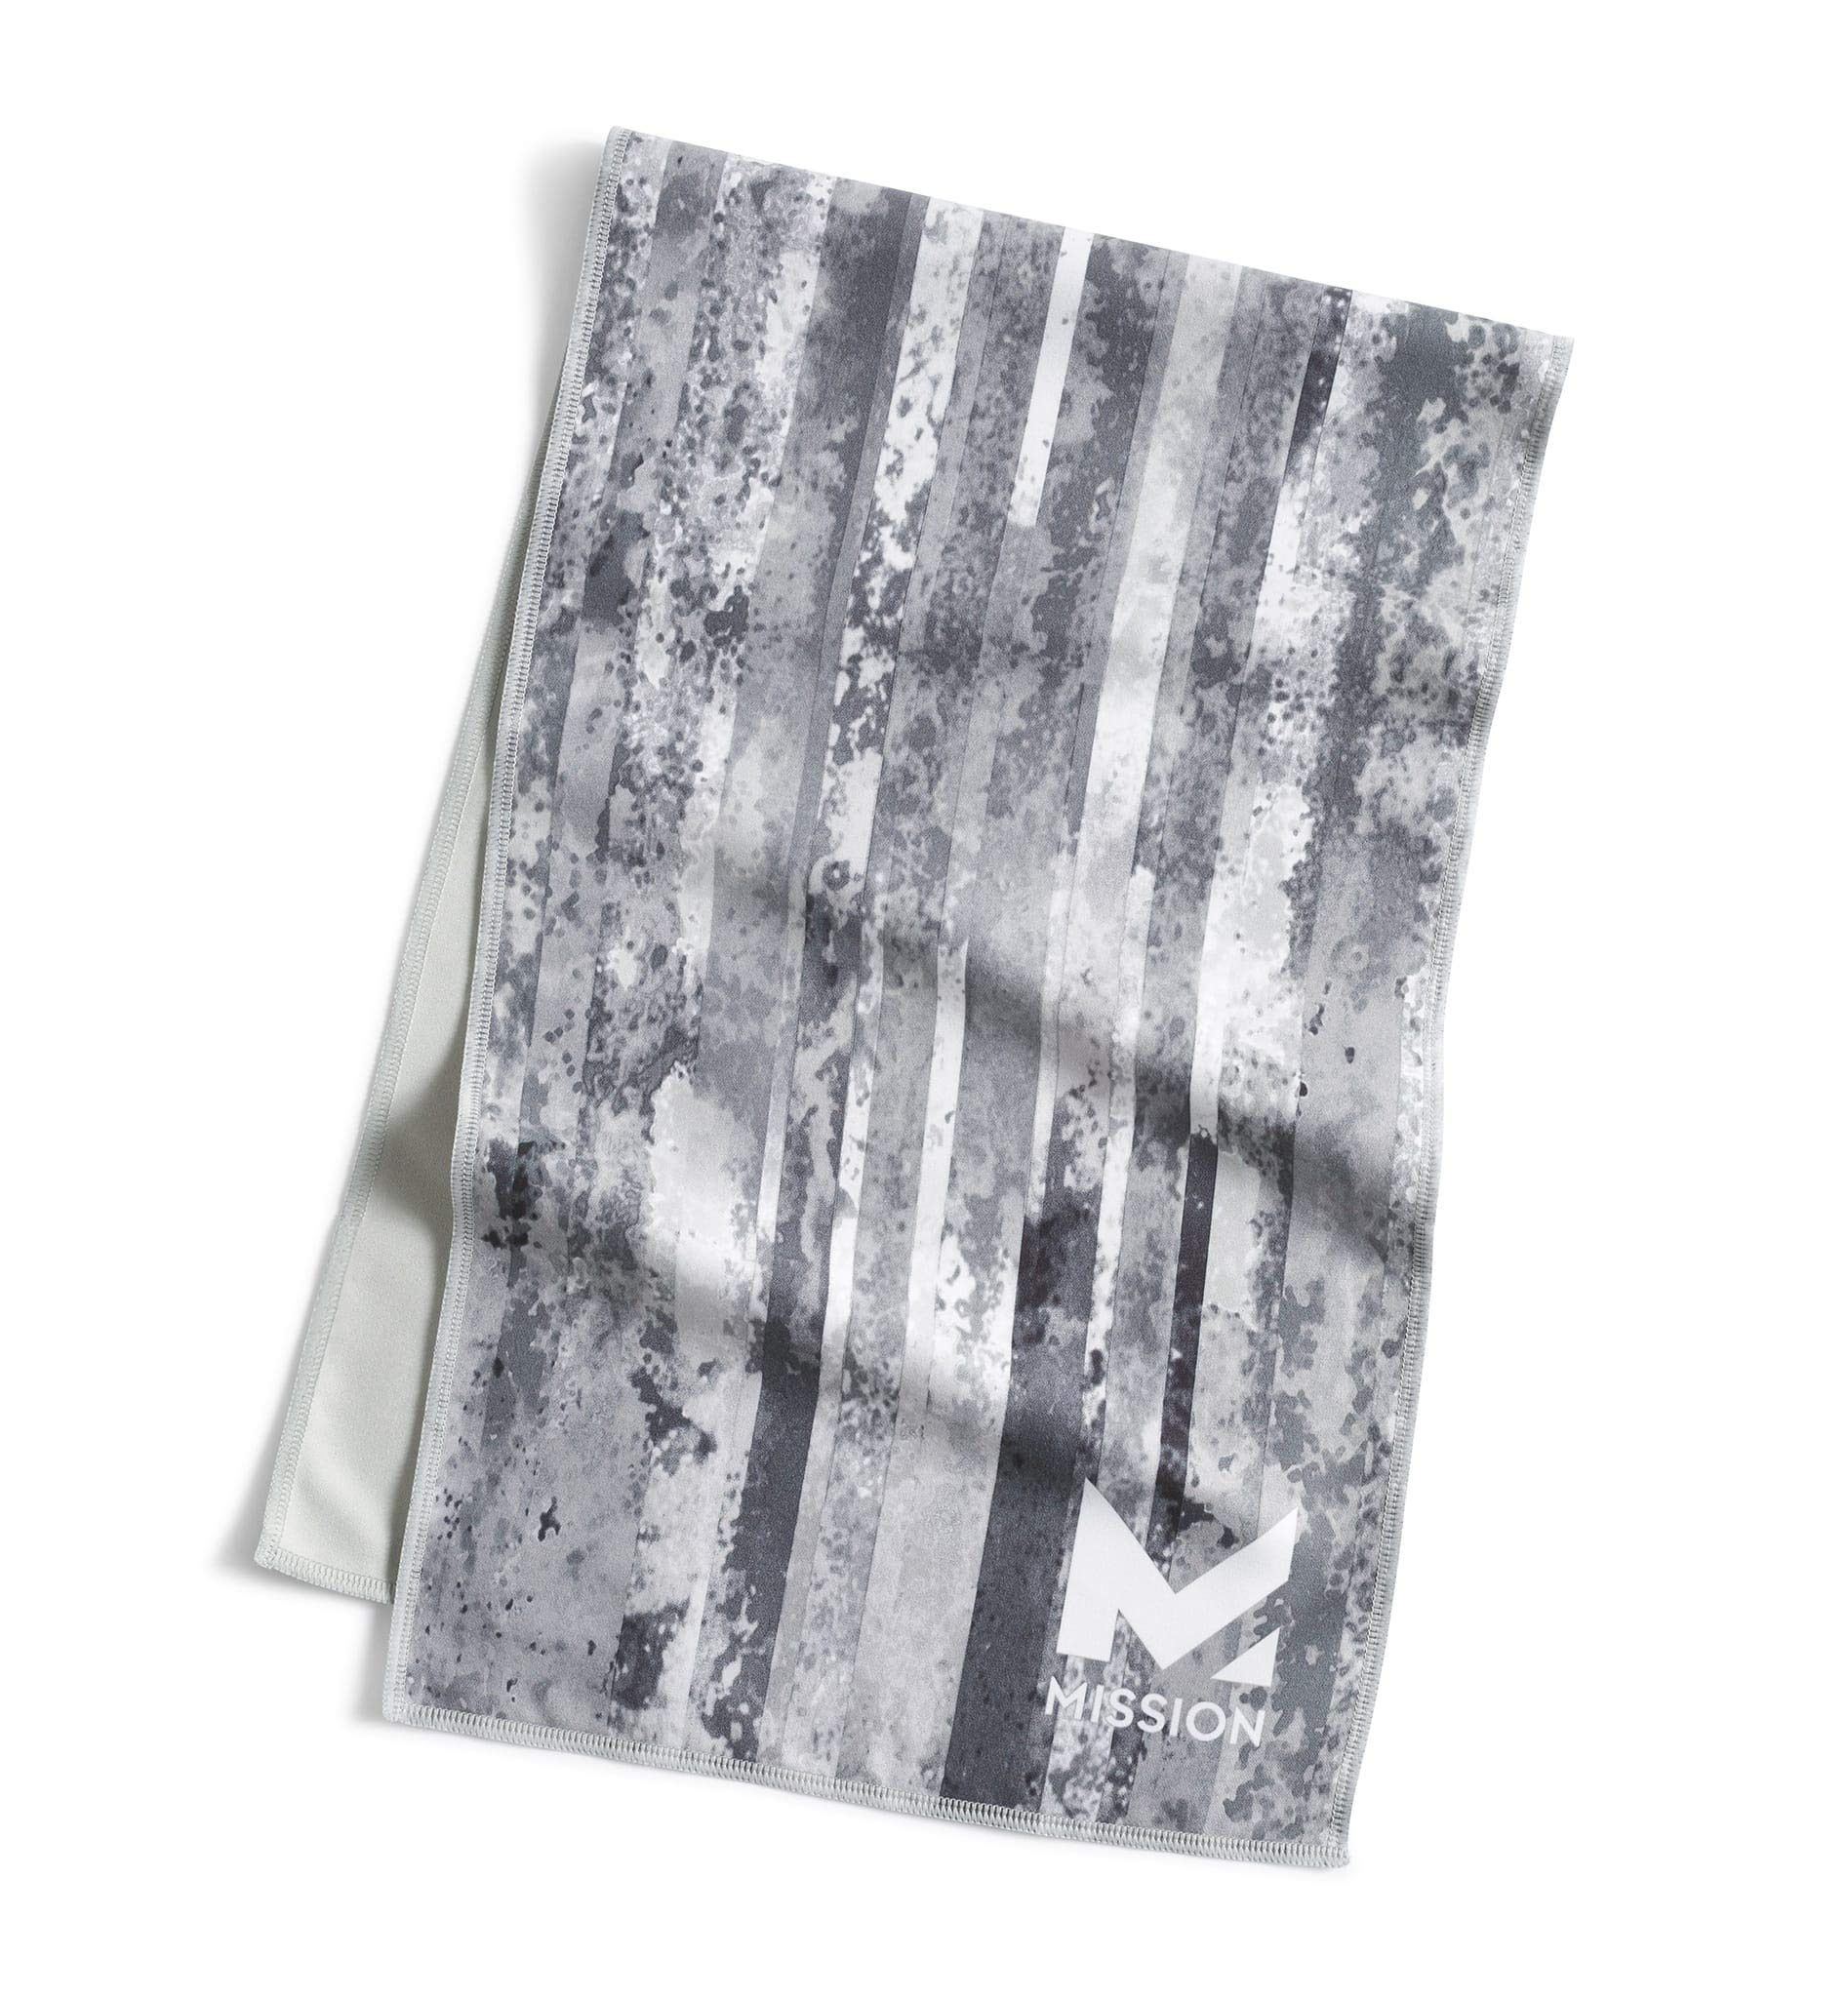 Mission Original Cooling Towel, Grunge Stripe Silver, One Size by Mission